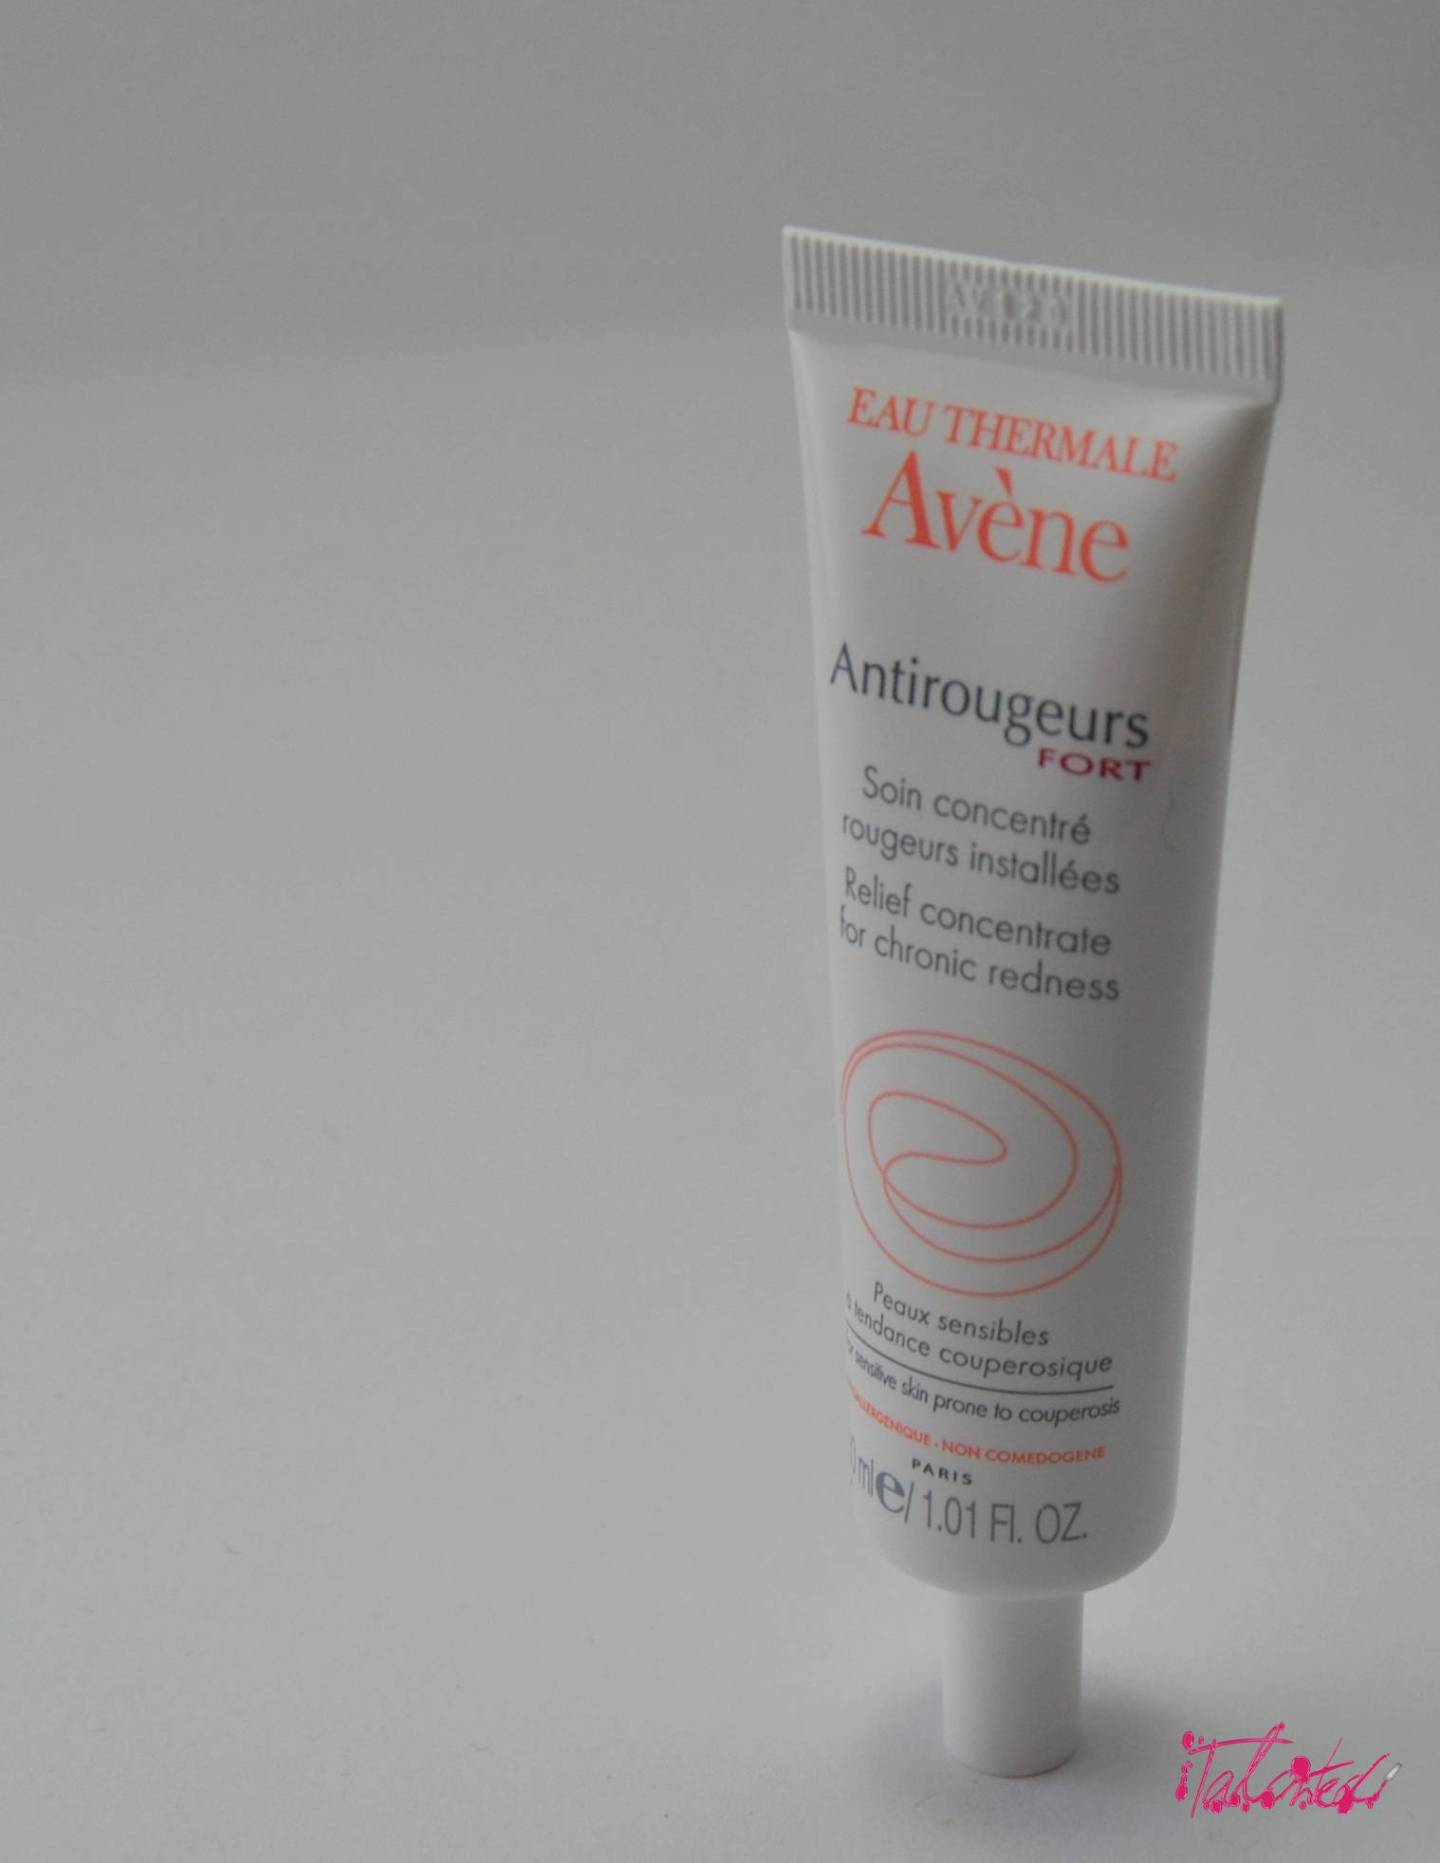 Avene Anti Rougeurs Fort Relief Concentrate